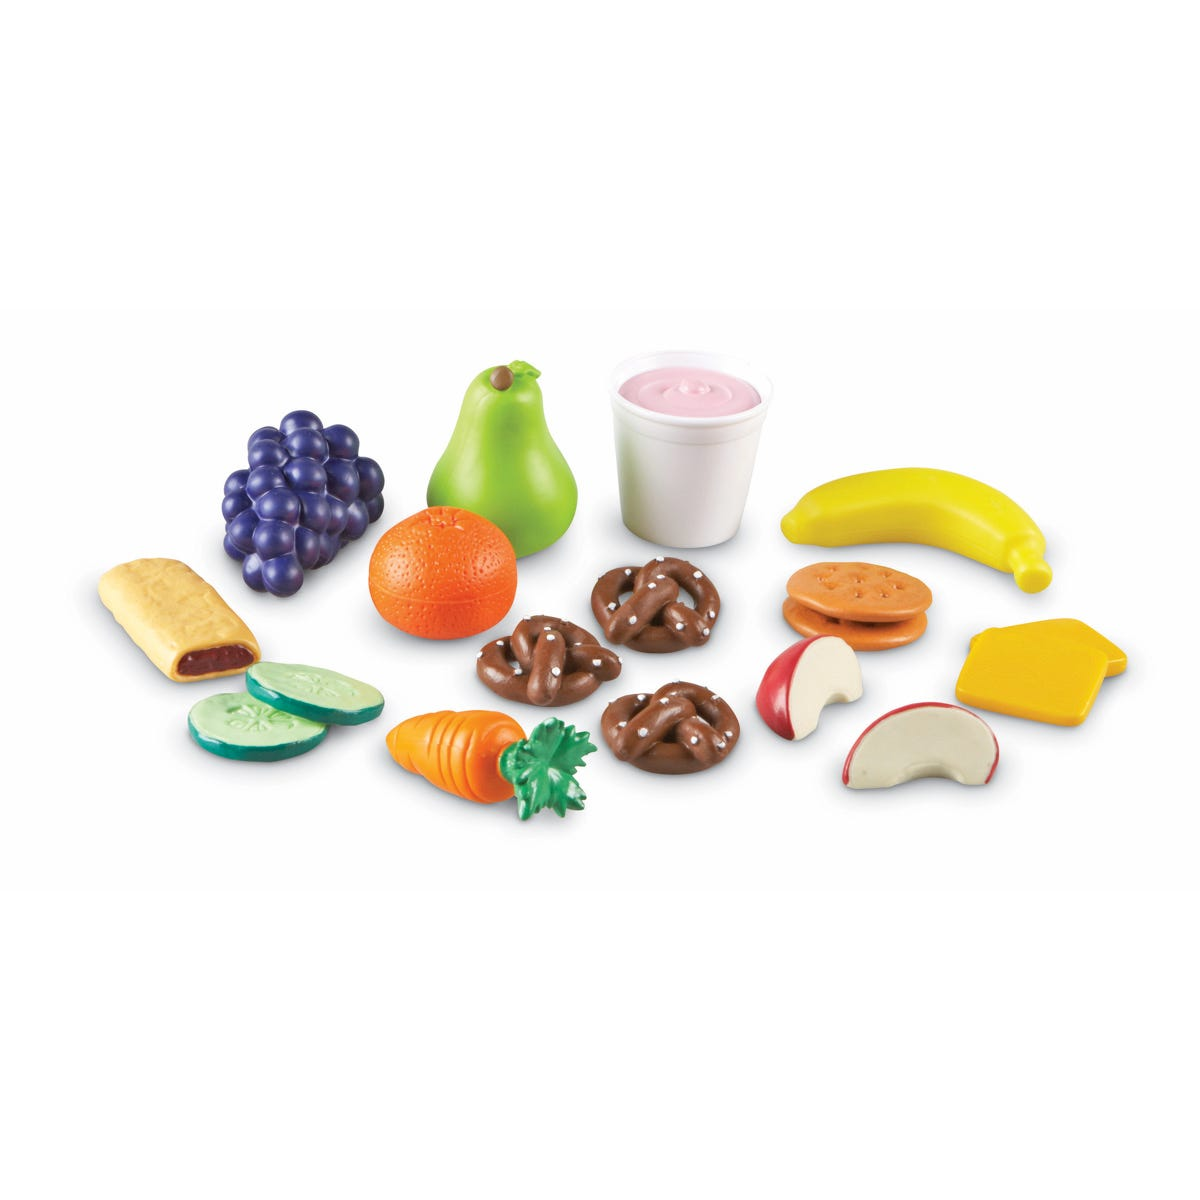 New Sprouts Healthy Snack Play Set